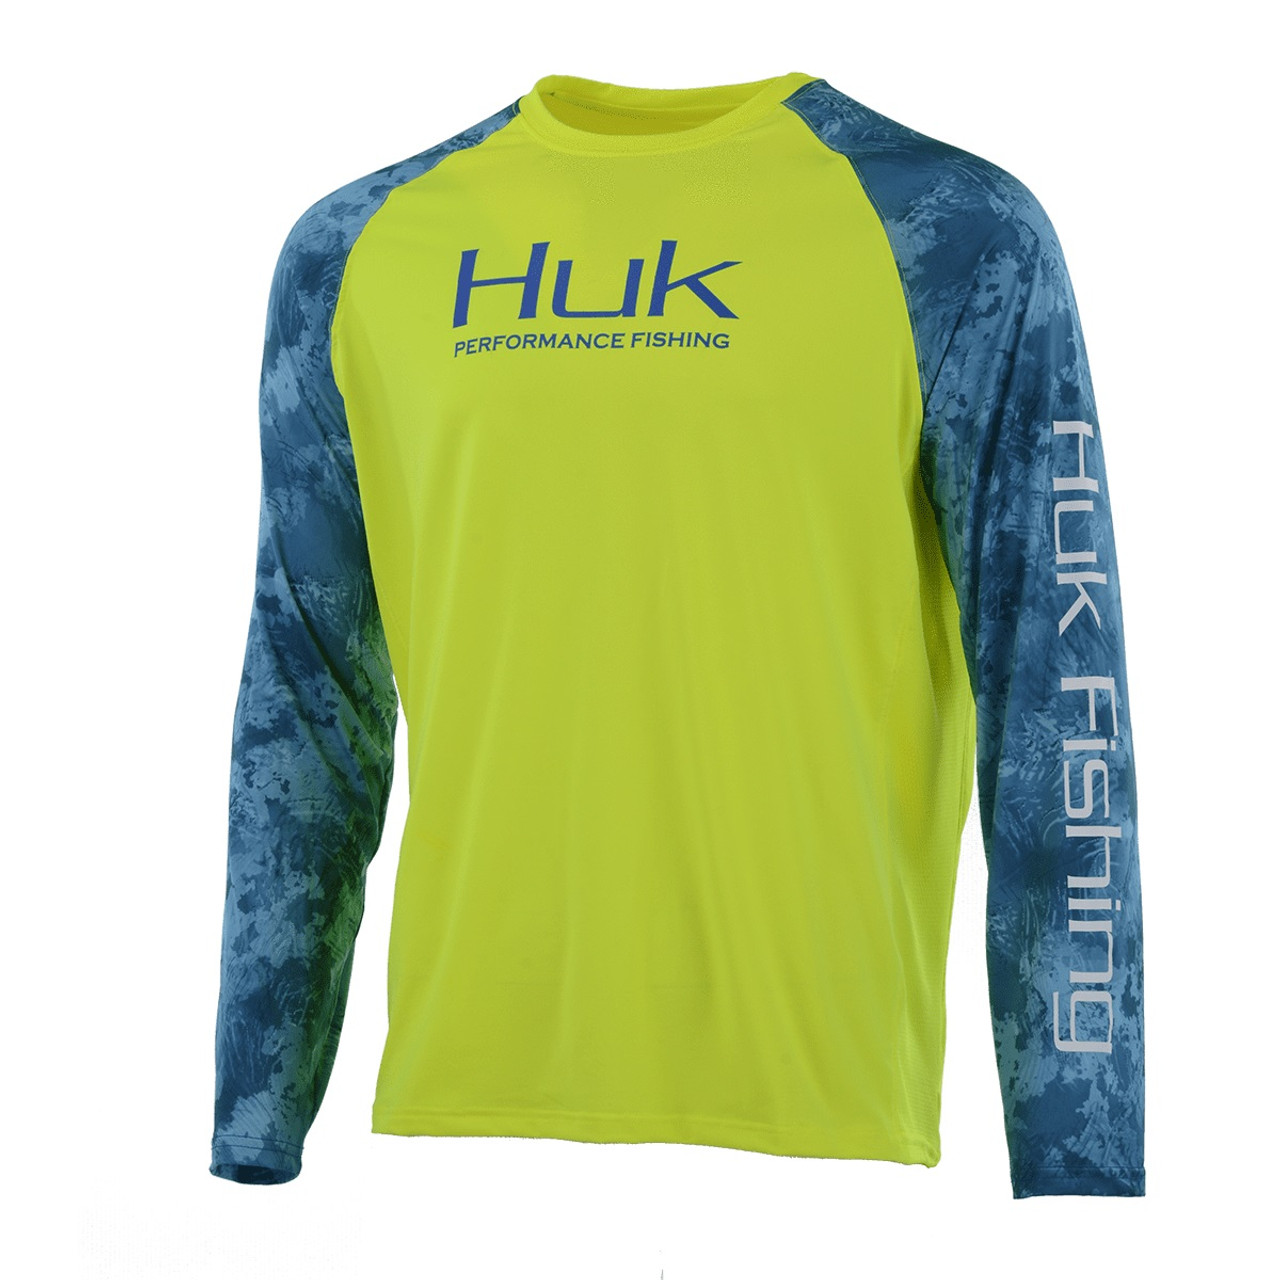 Huk Men's Double Header Raglan Vented Long Sleeve Shirt H1200136